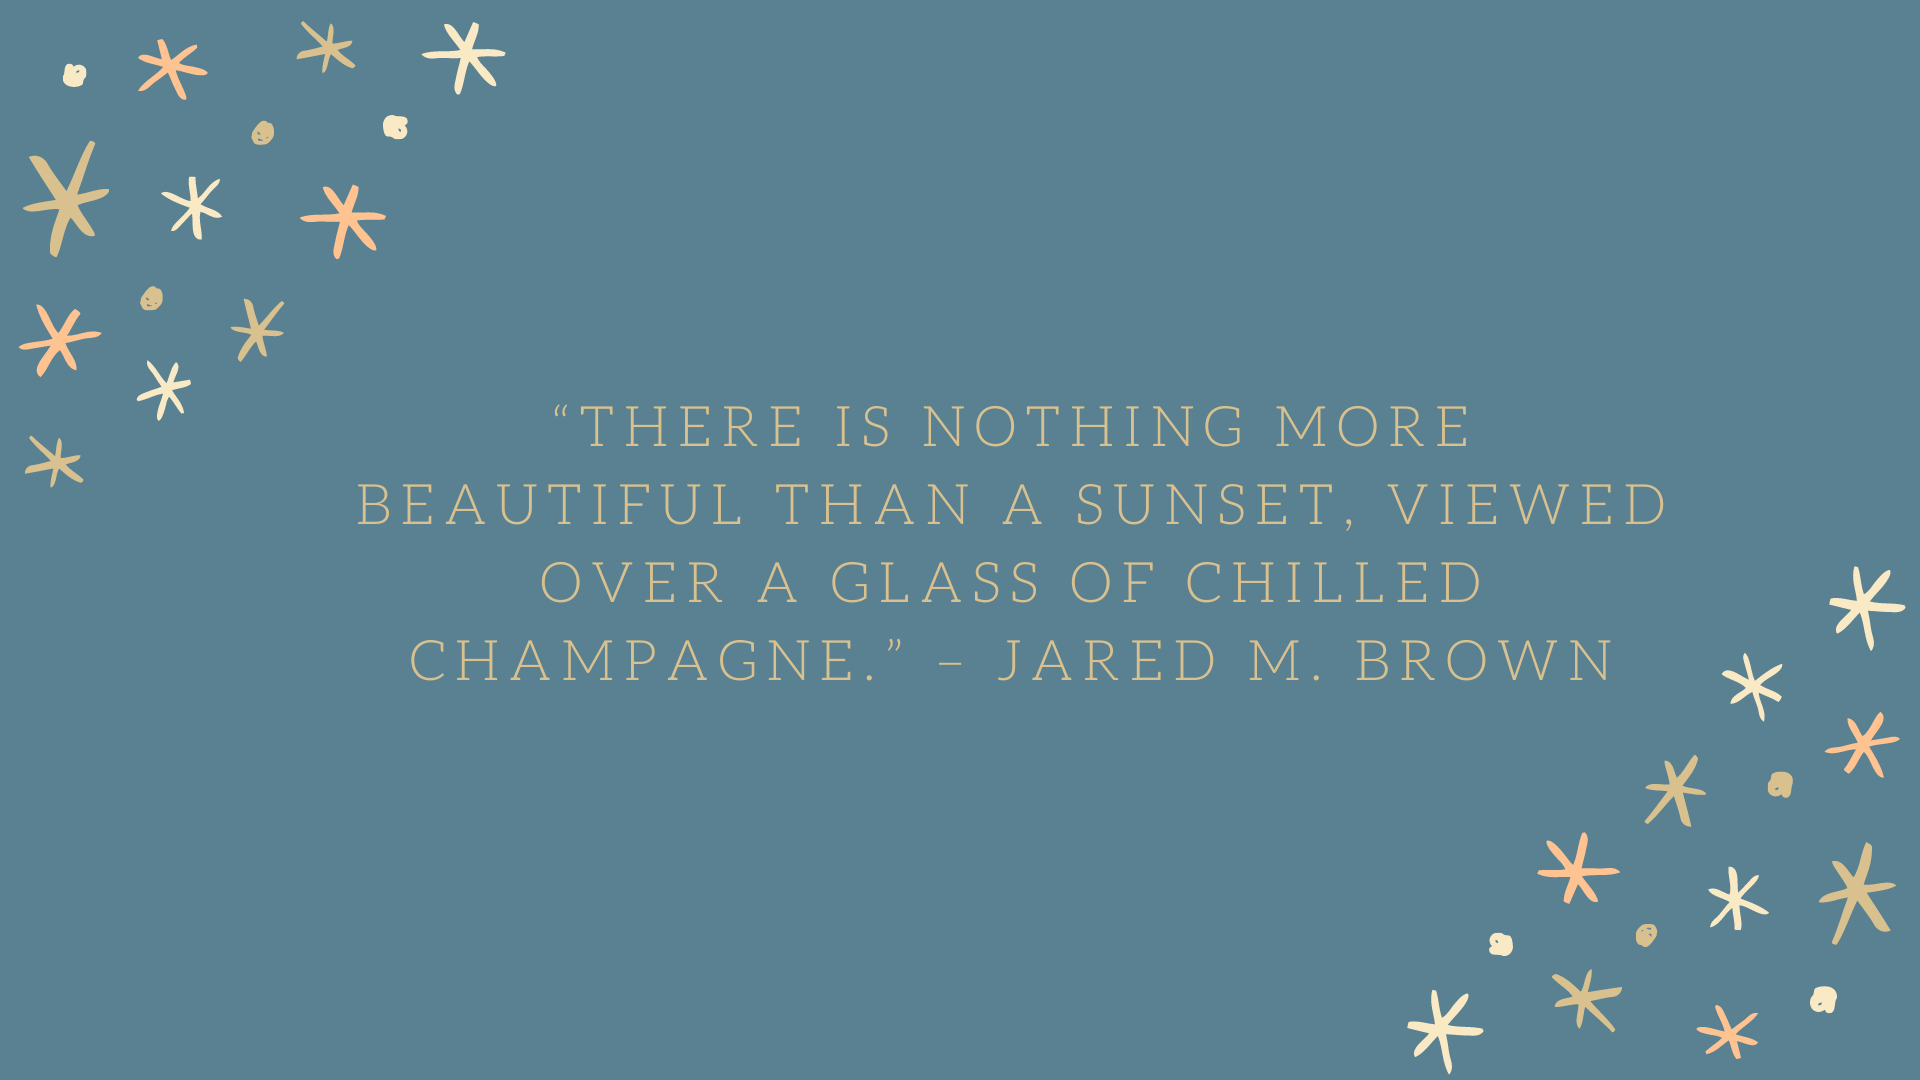 """There is nothing more beautiful than a sunset, viewed over a glass of chilled Champagne."" – Jared M. Brown"